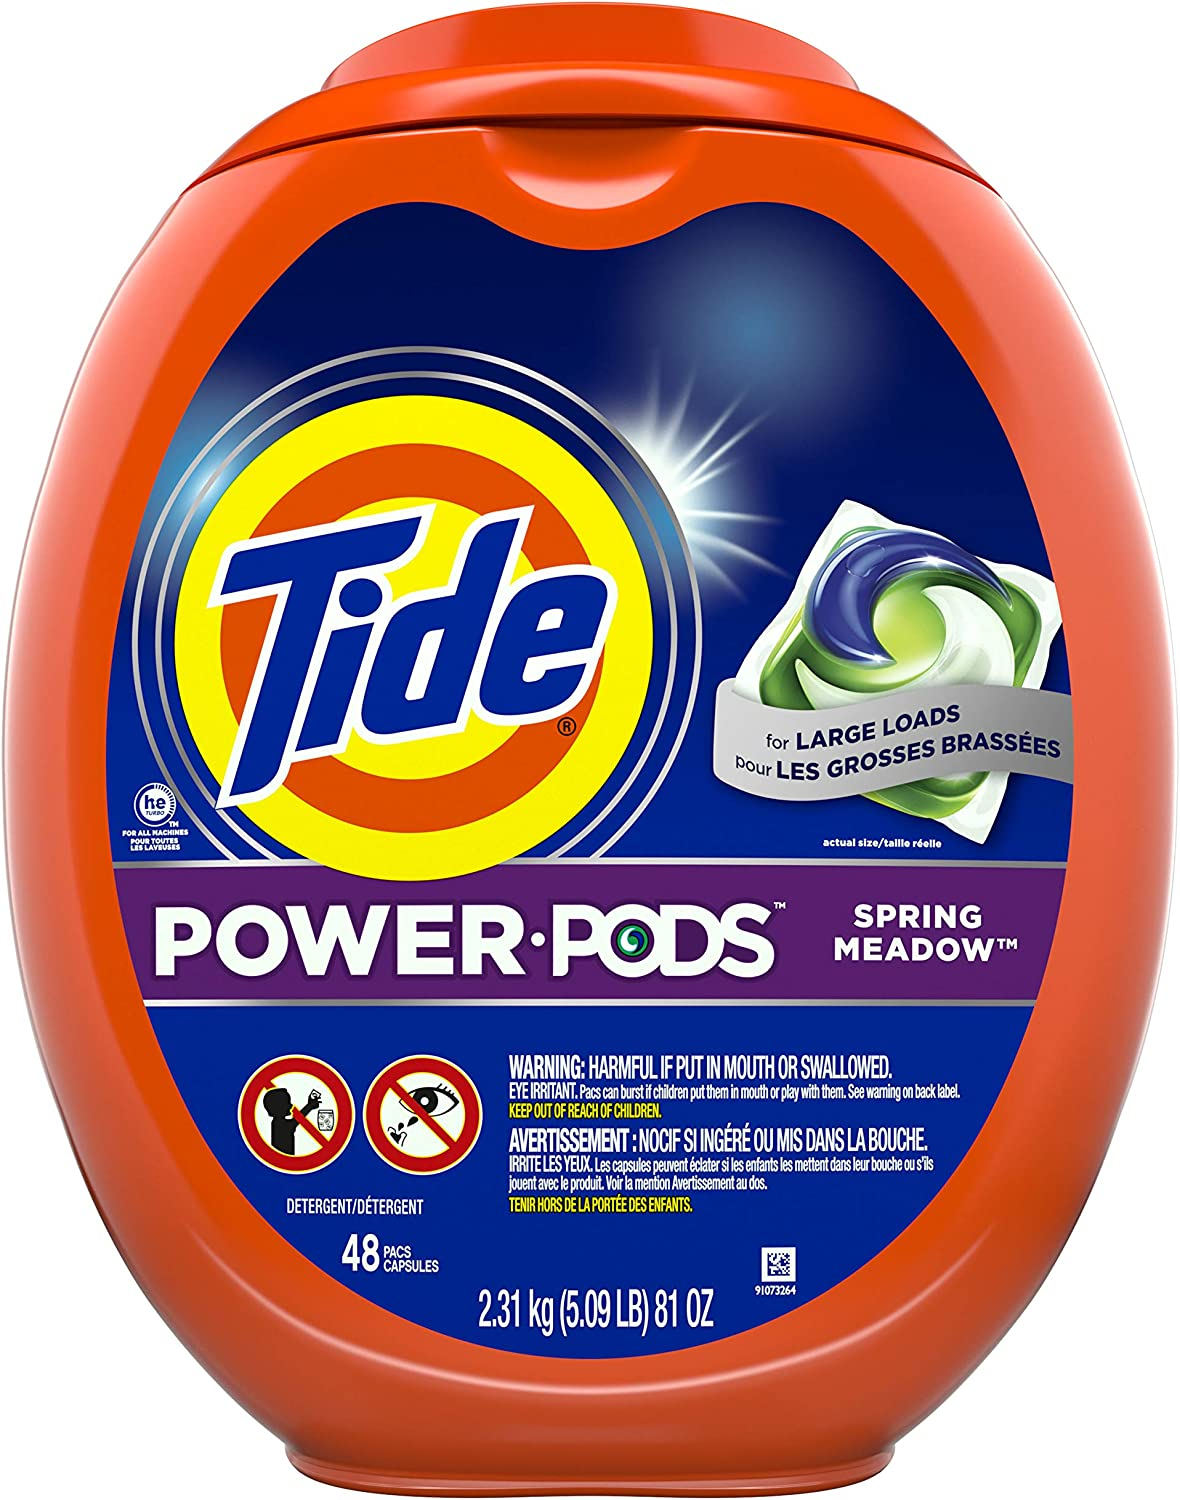 Tide Power pods Laundry Detergent pacs, Designed for Large Loads, Spring Meadow, 48 Count